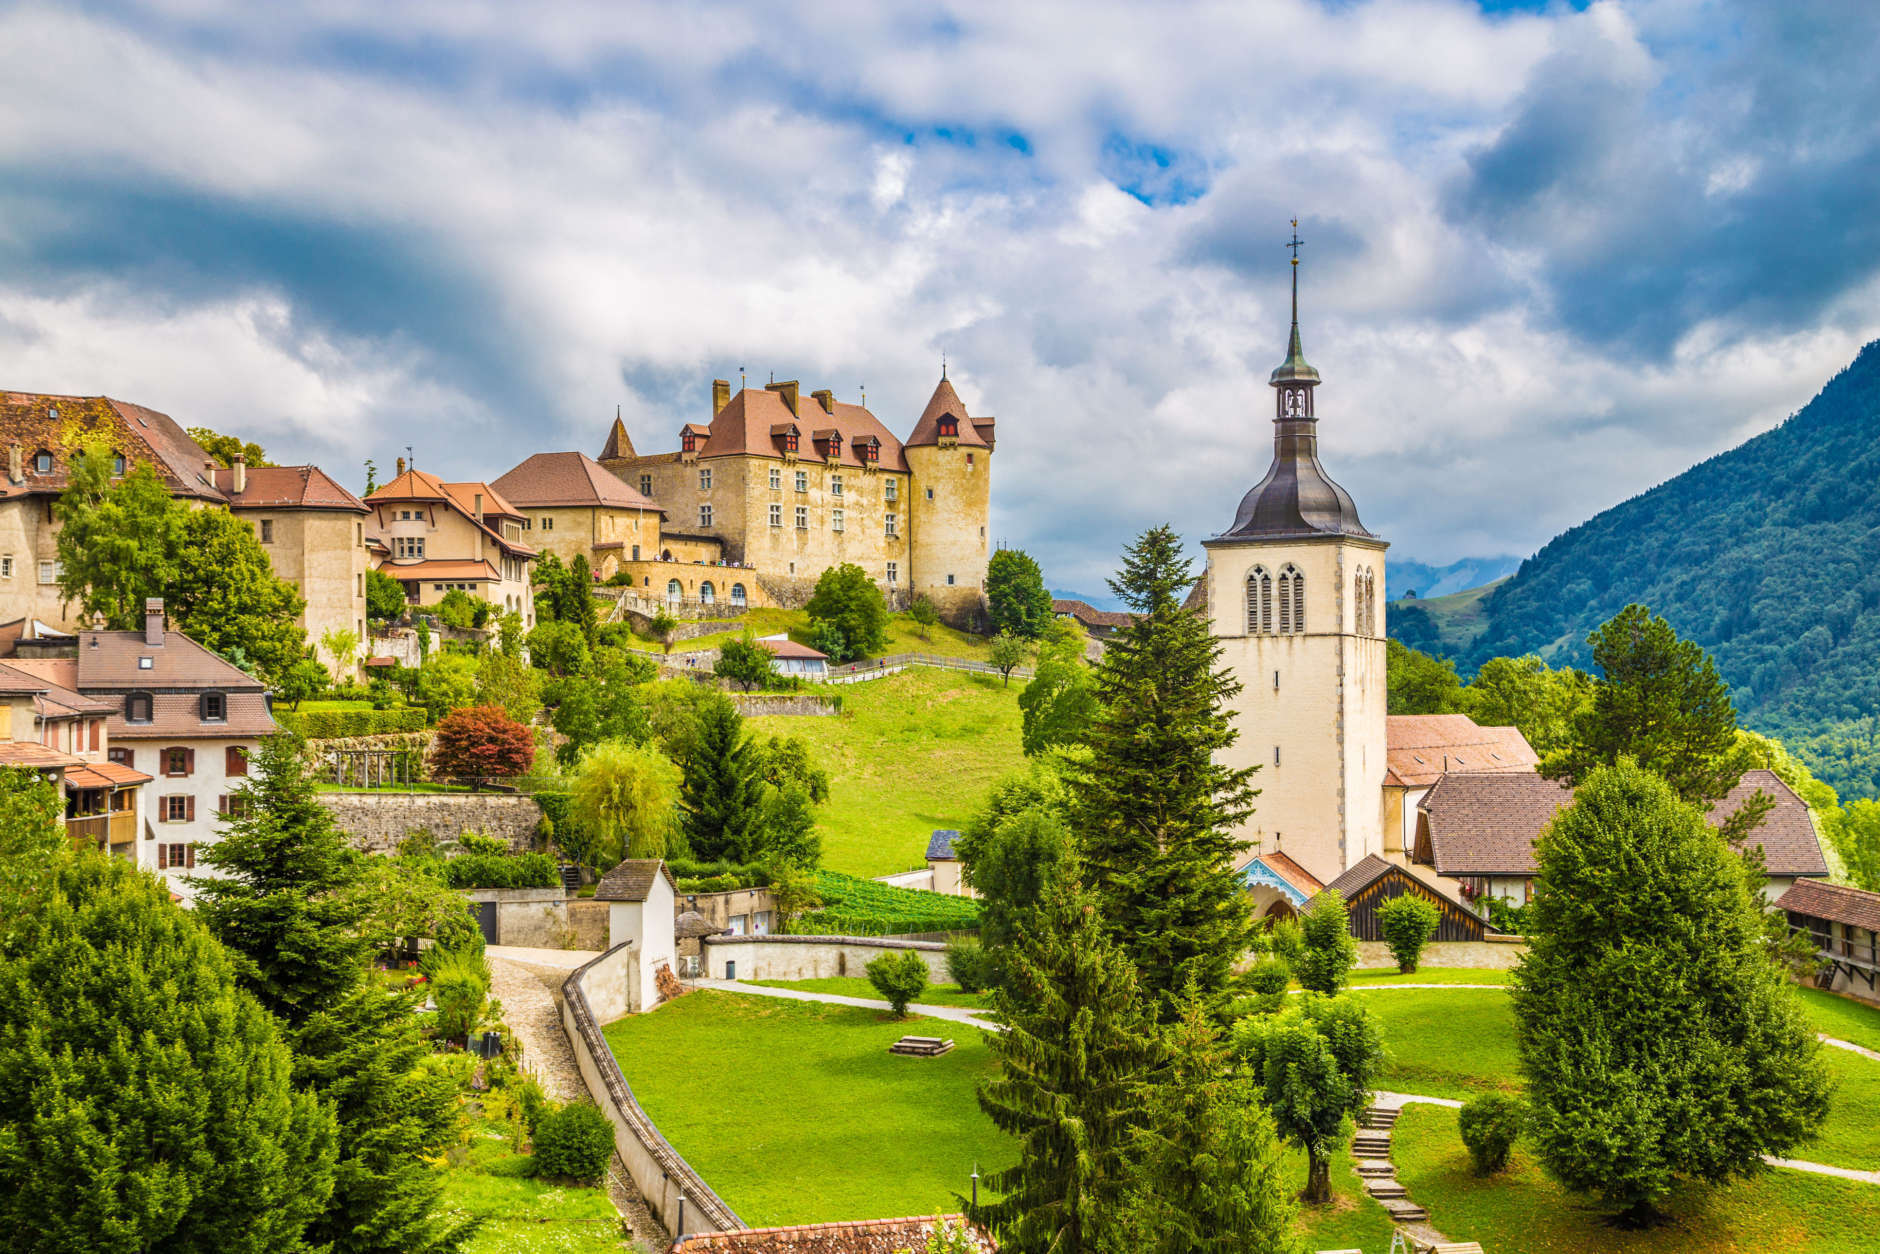 Beautiful view of the medieval town of Gruyeres, home to the world-famous Le Gruyere cheese, canton of Fribourg, Switzerland.